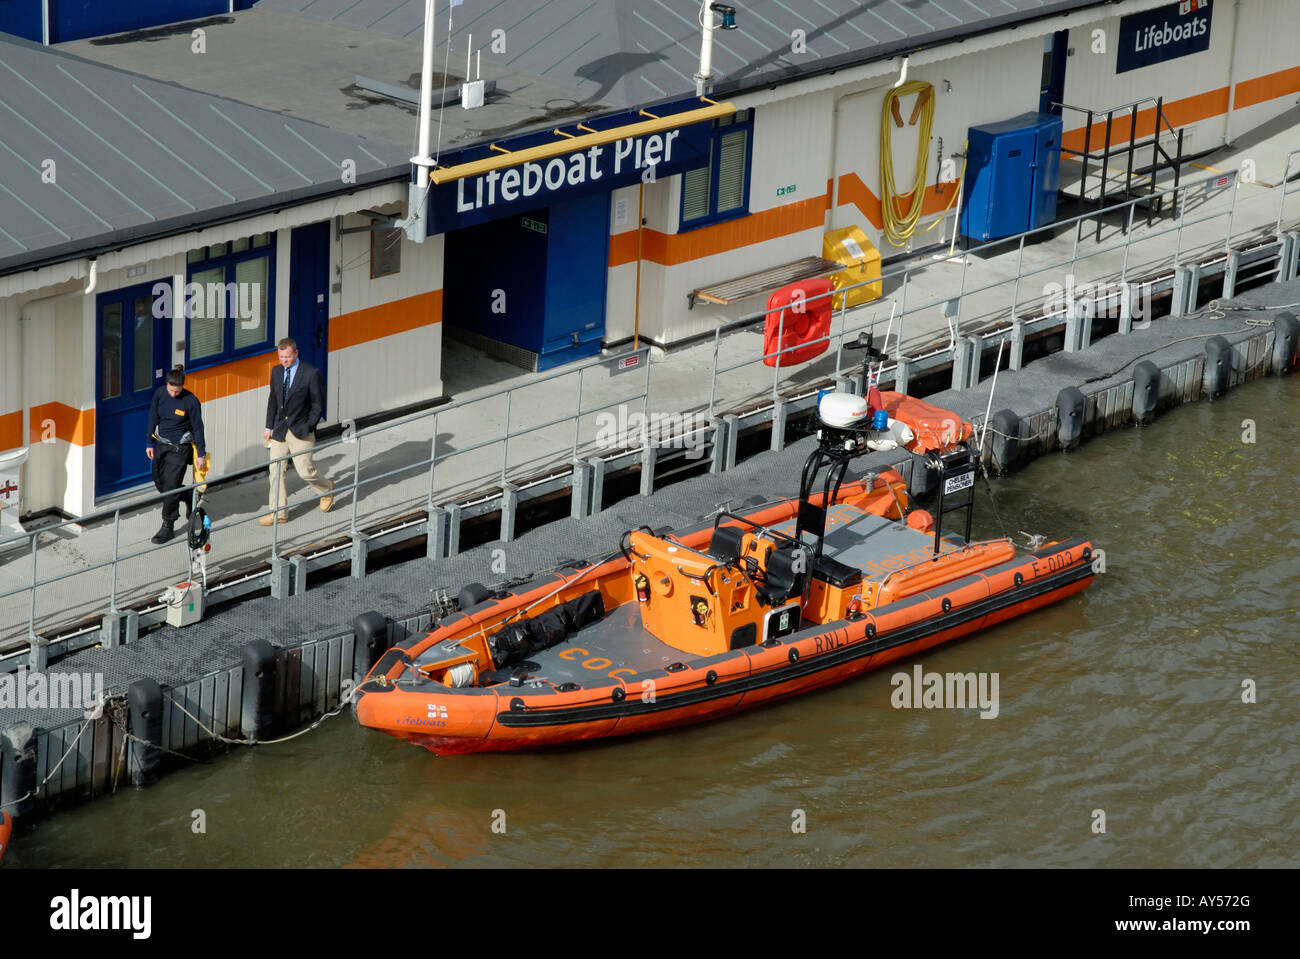 Rescue RIB moored at the RNLI Lifeboat Pier on the River Thames, Victoria Embankment, London, England Stock Photo